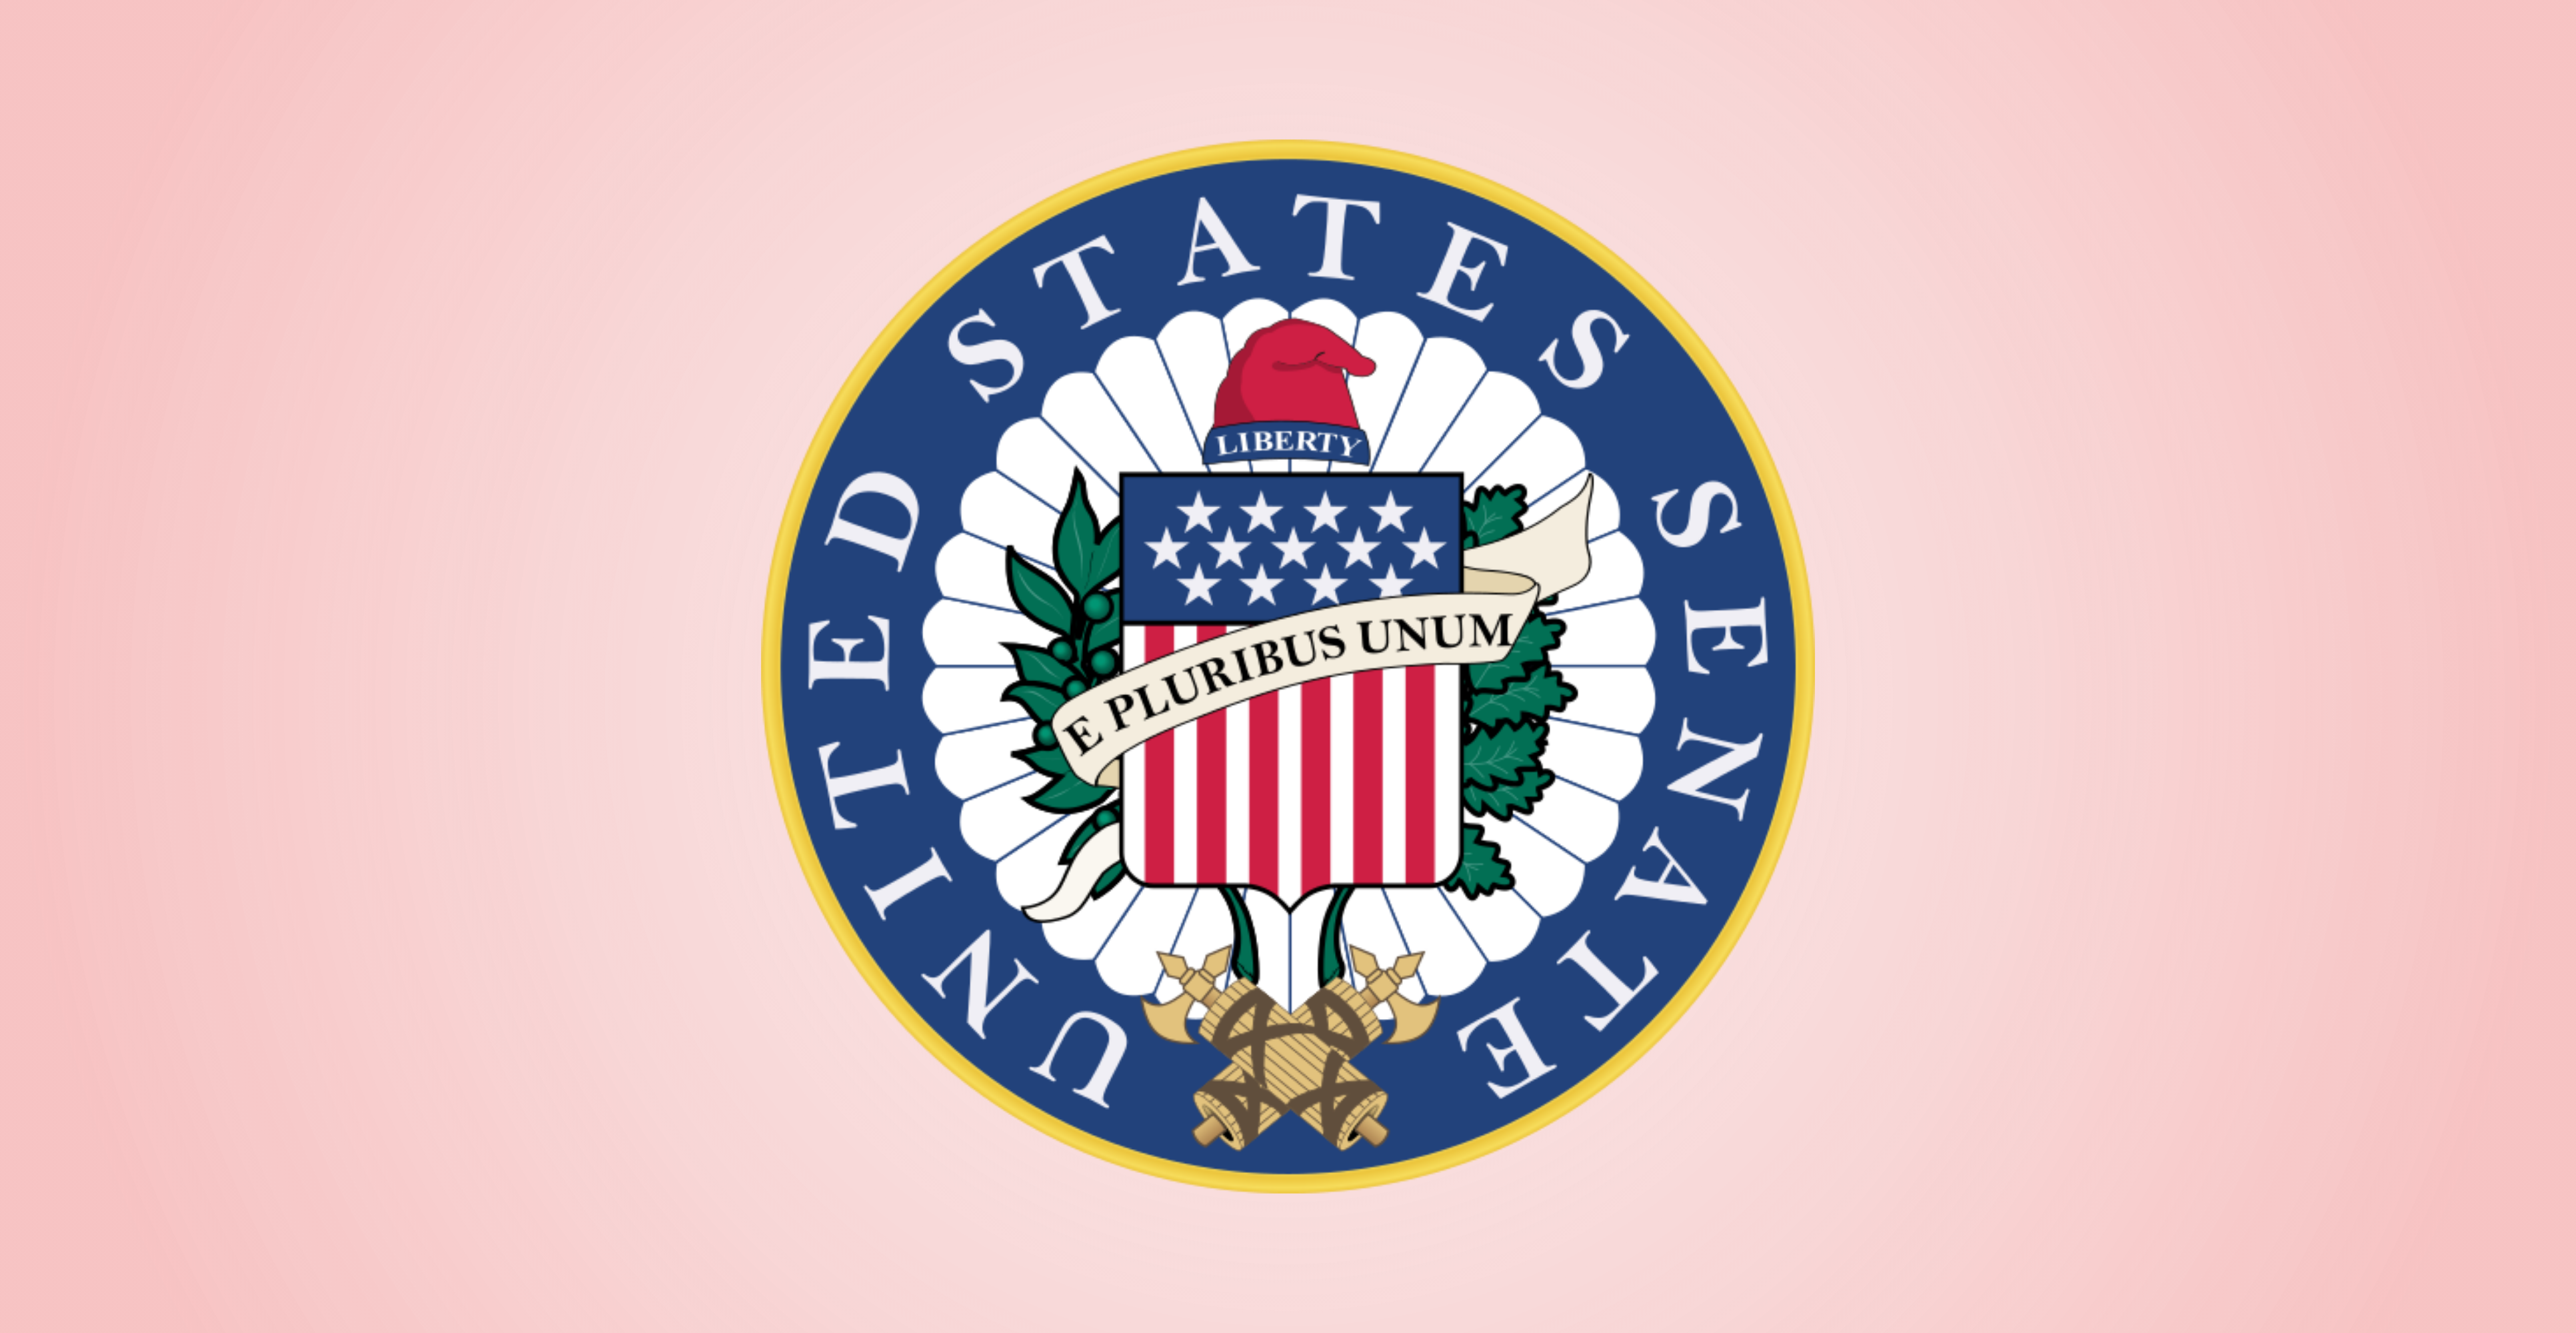 The Seal of the United States Senate